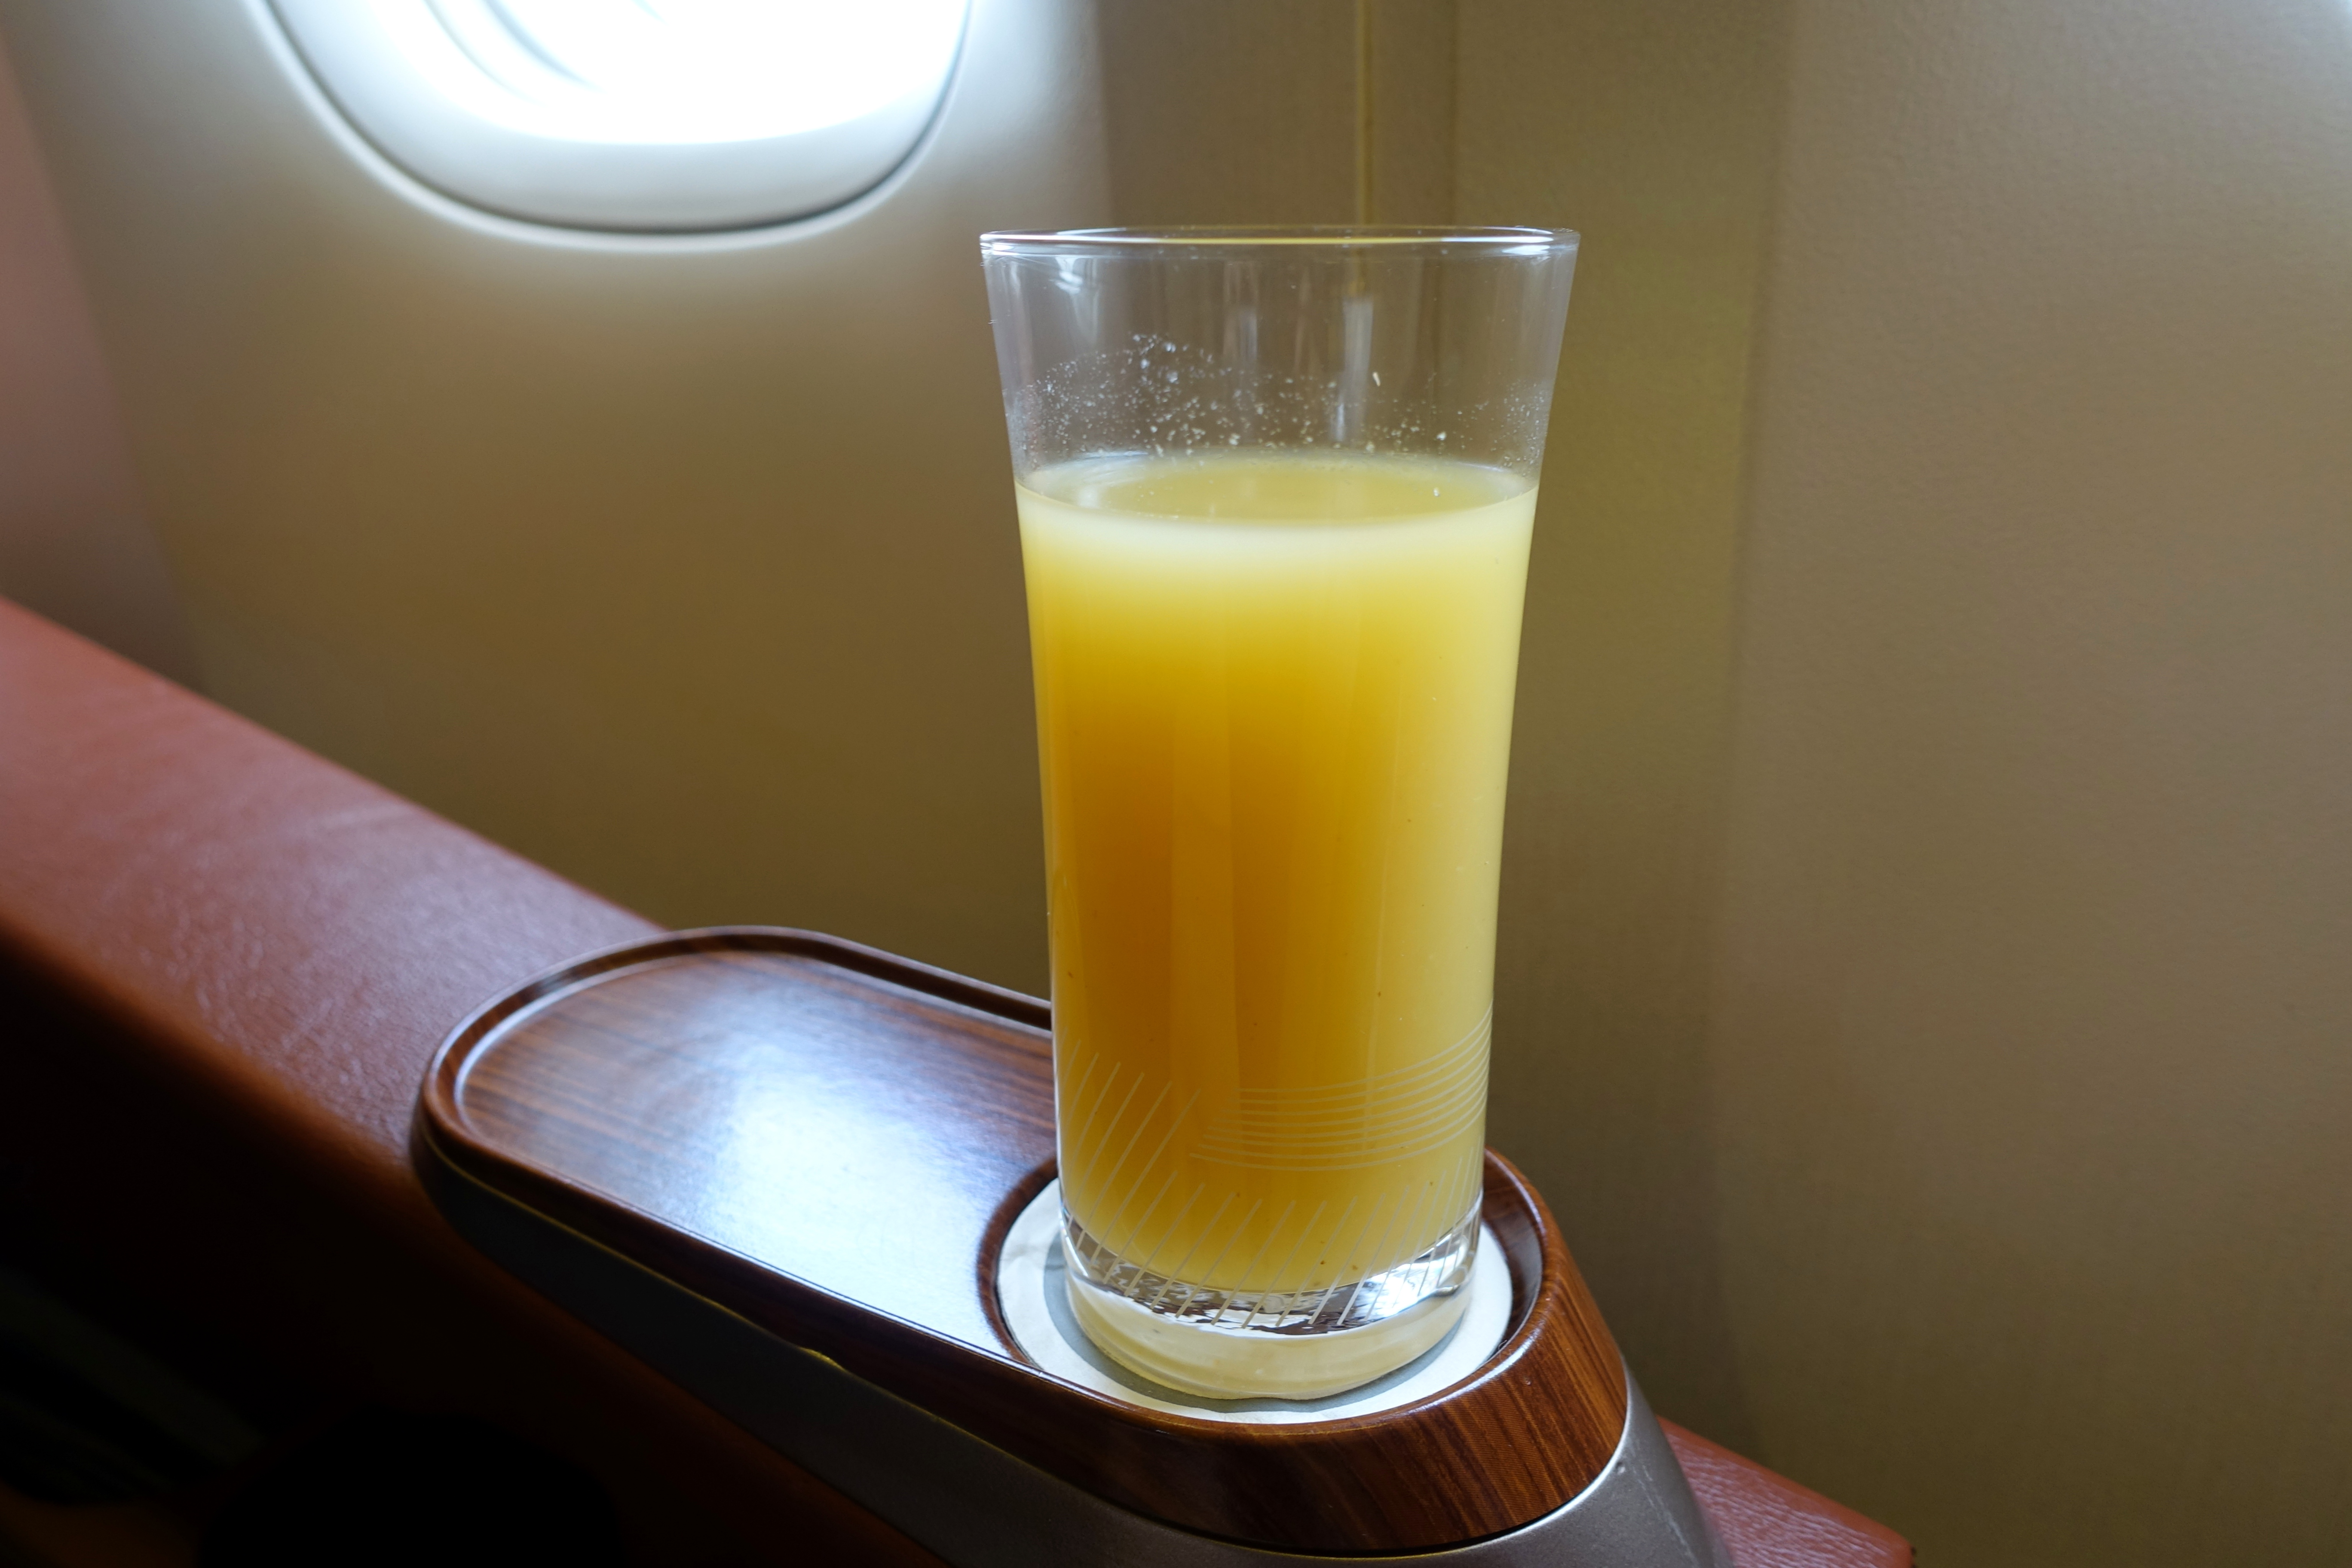 Singapore First Class 777 Review-Pre-Flight Drink